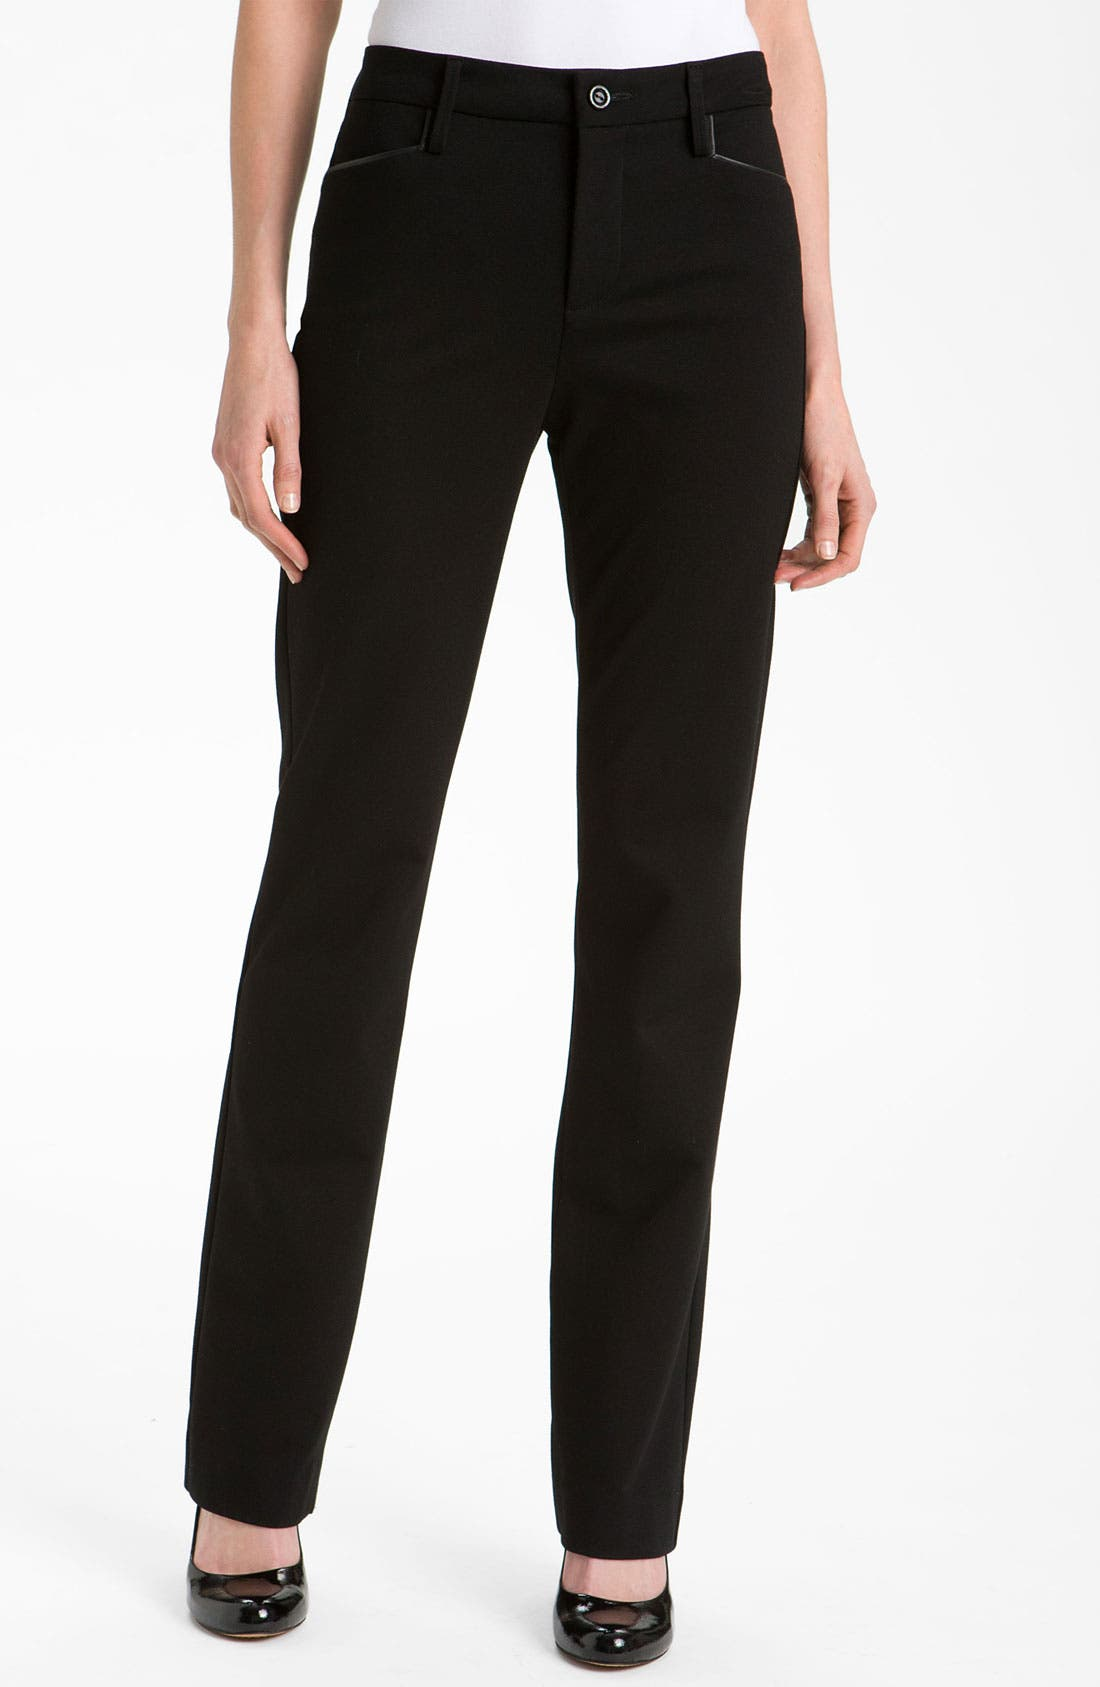 Alternate Image 1 Selected - NYDJ 'Ryan' Faux Leather Trim Ponte Trousers